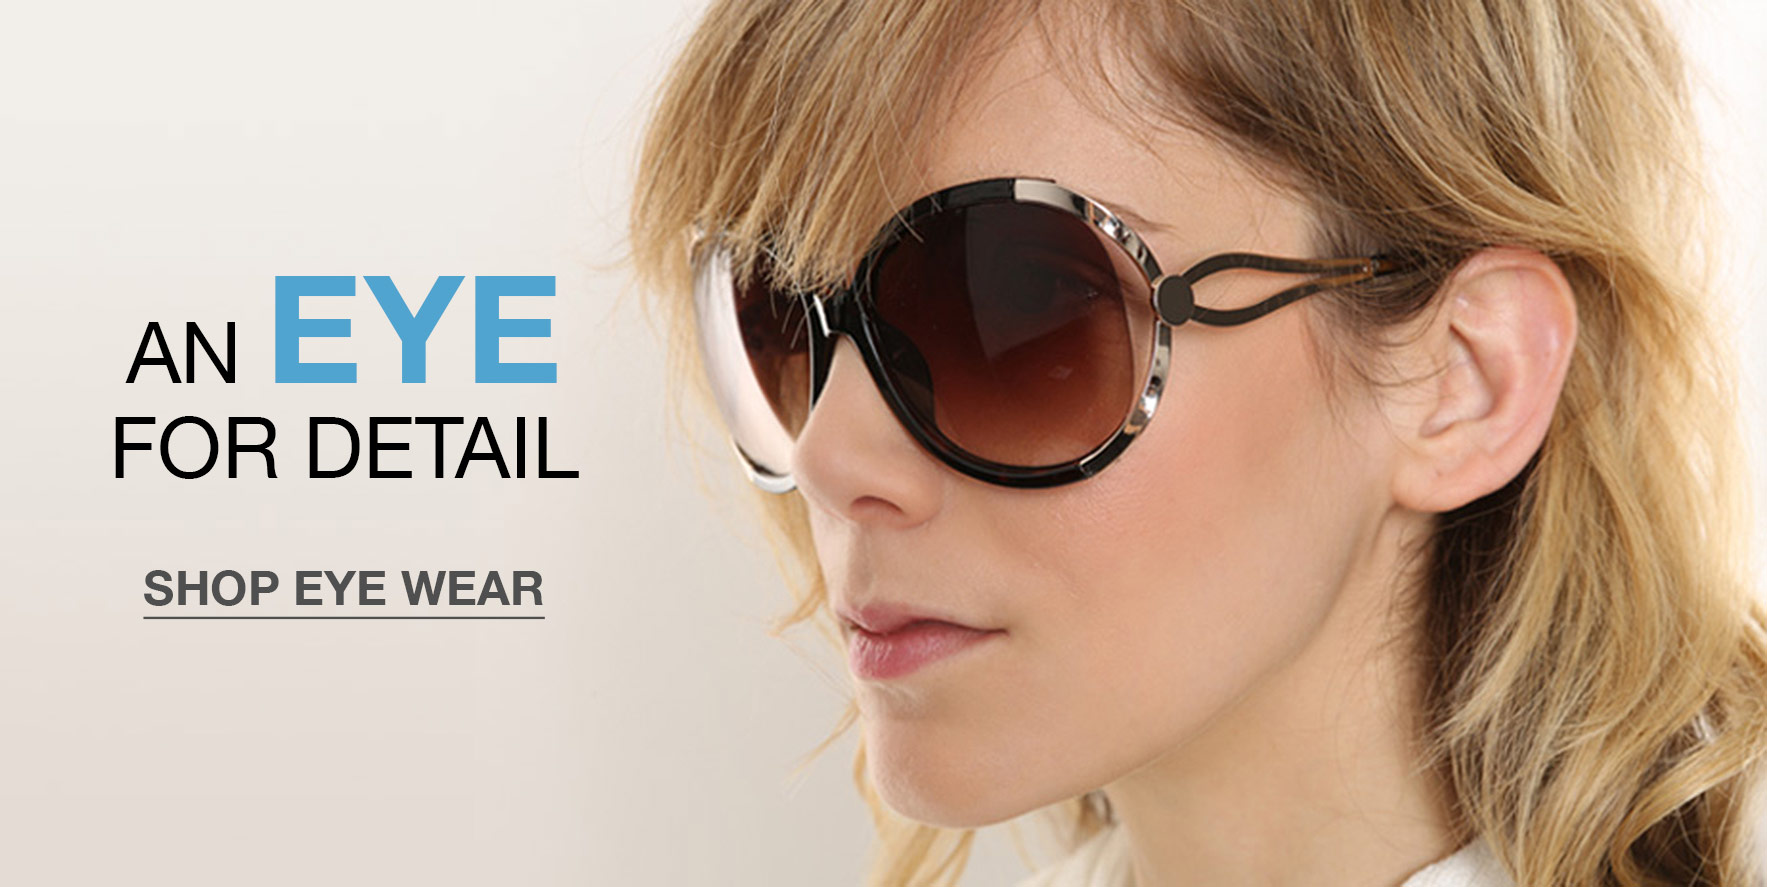 An eye for detail - Click to Shop Eye Wear